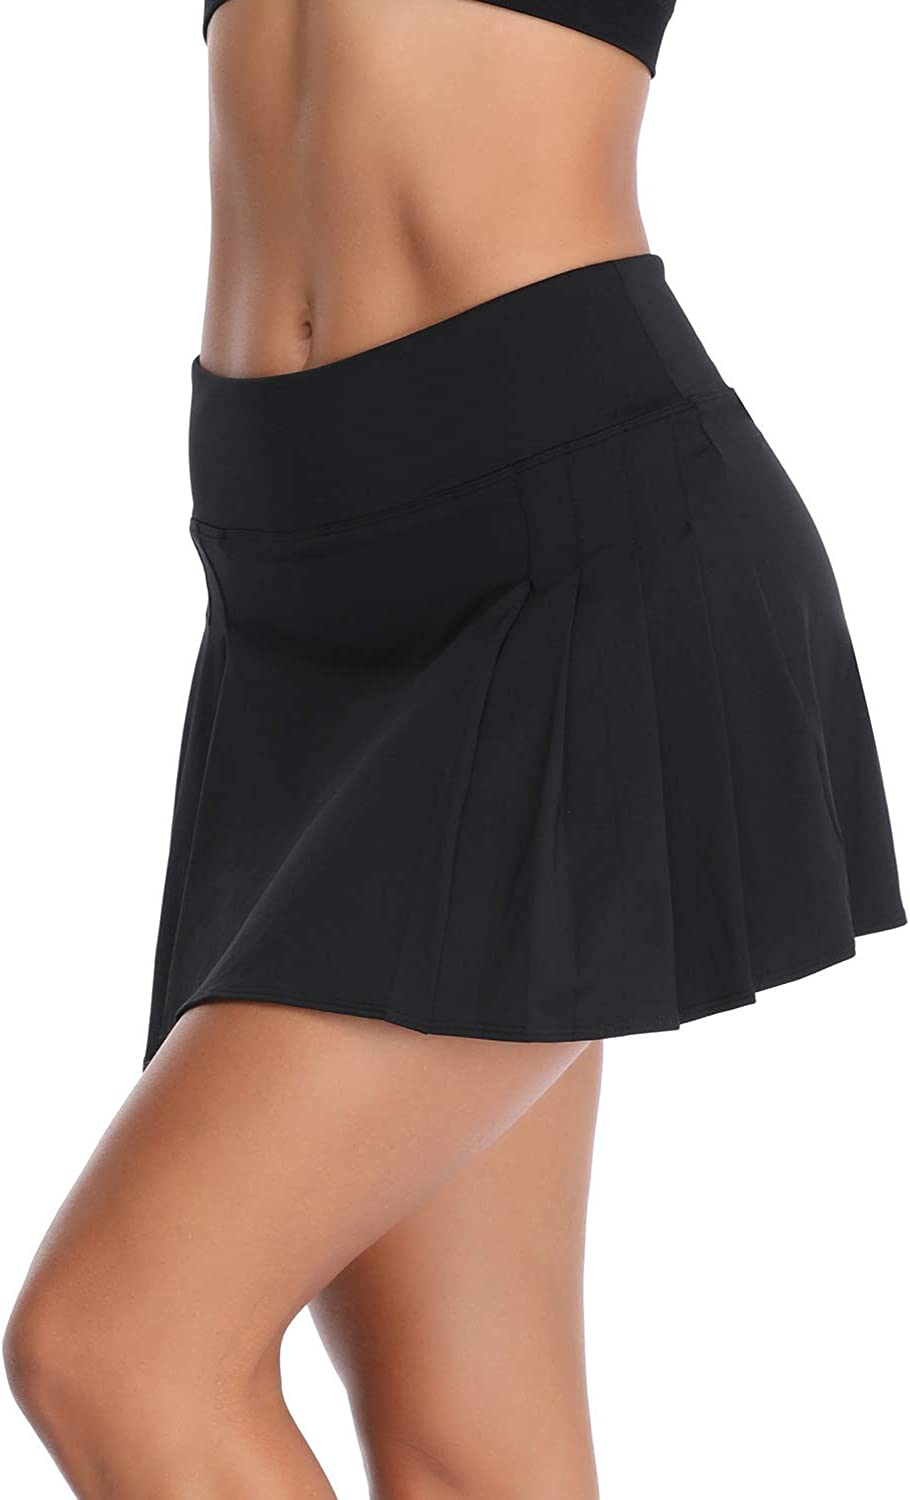 RainbowTree Women's Golf Skirt Tennis Skort Pleated with Side Inner Pockets Indoor Exercise: Clothing